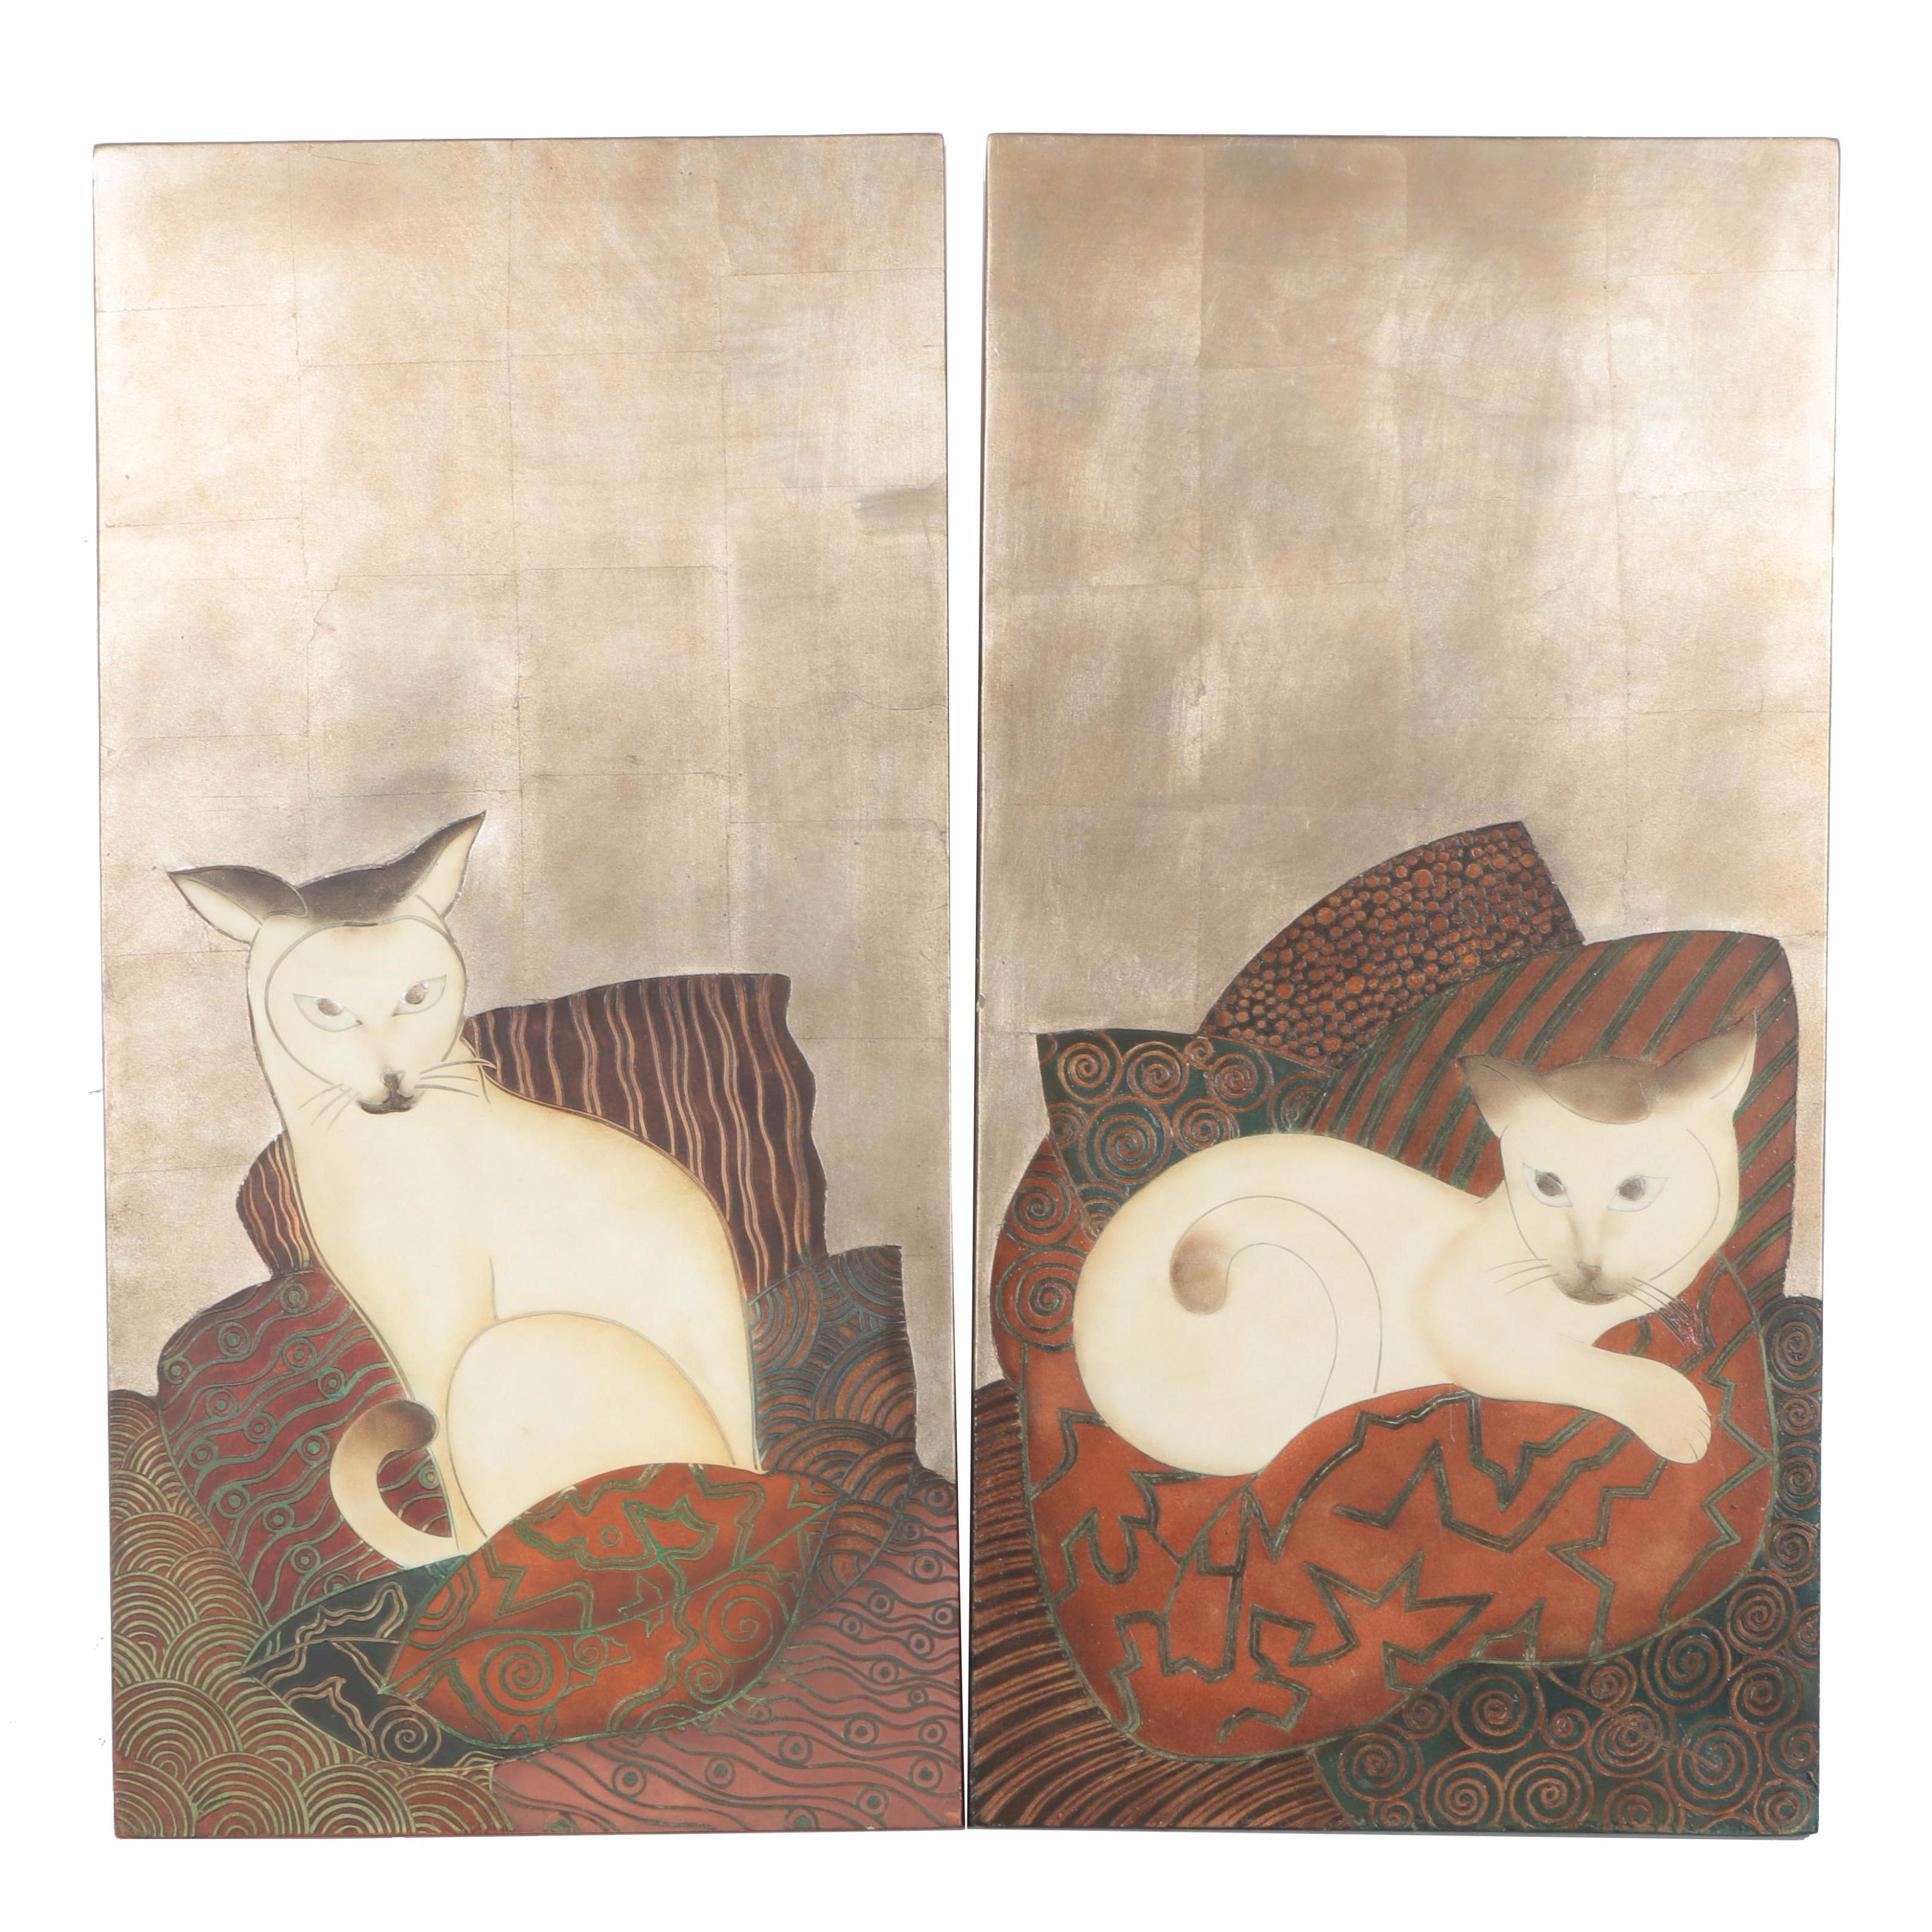 Mixed Media Relief Panels Depicting Cats